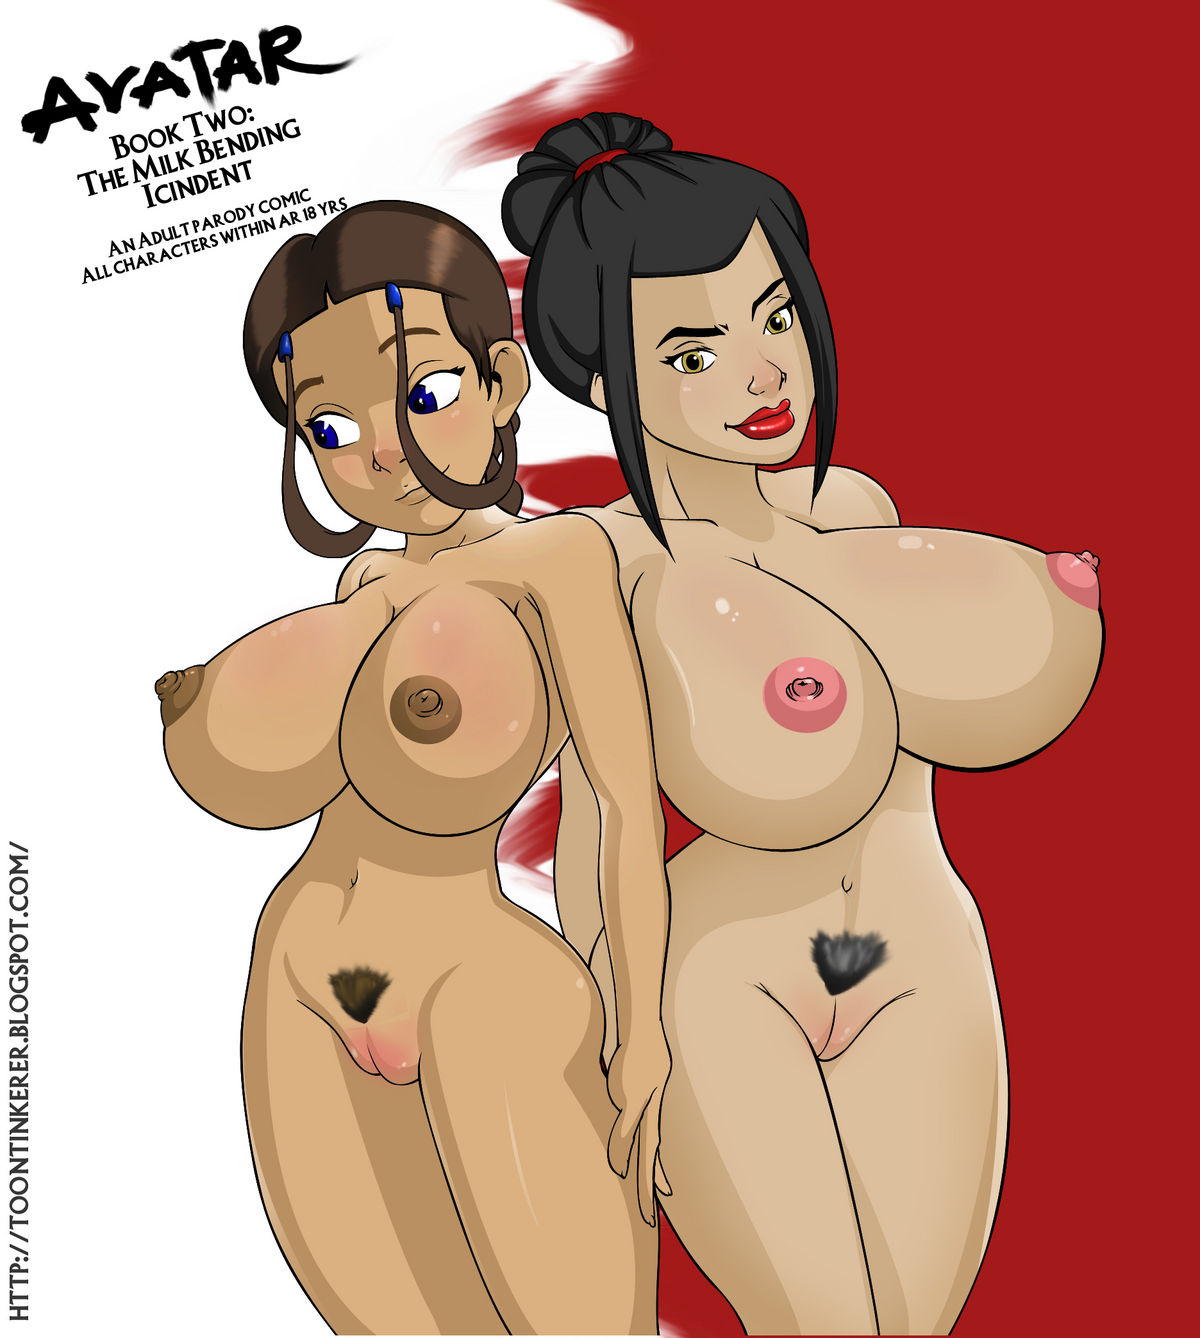 Porn Comics - A Milk Bending Incident- Avatar porn comics 8 muses